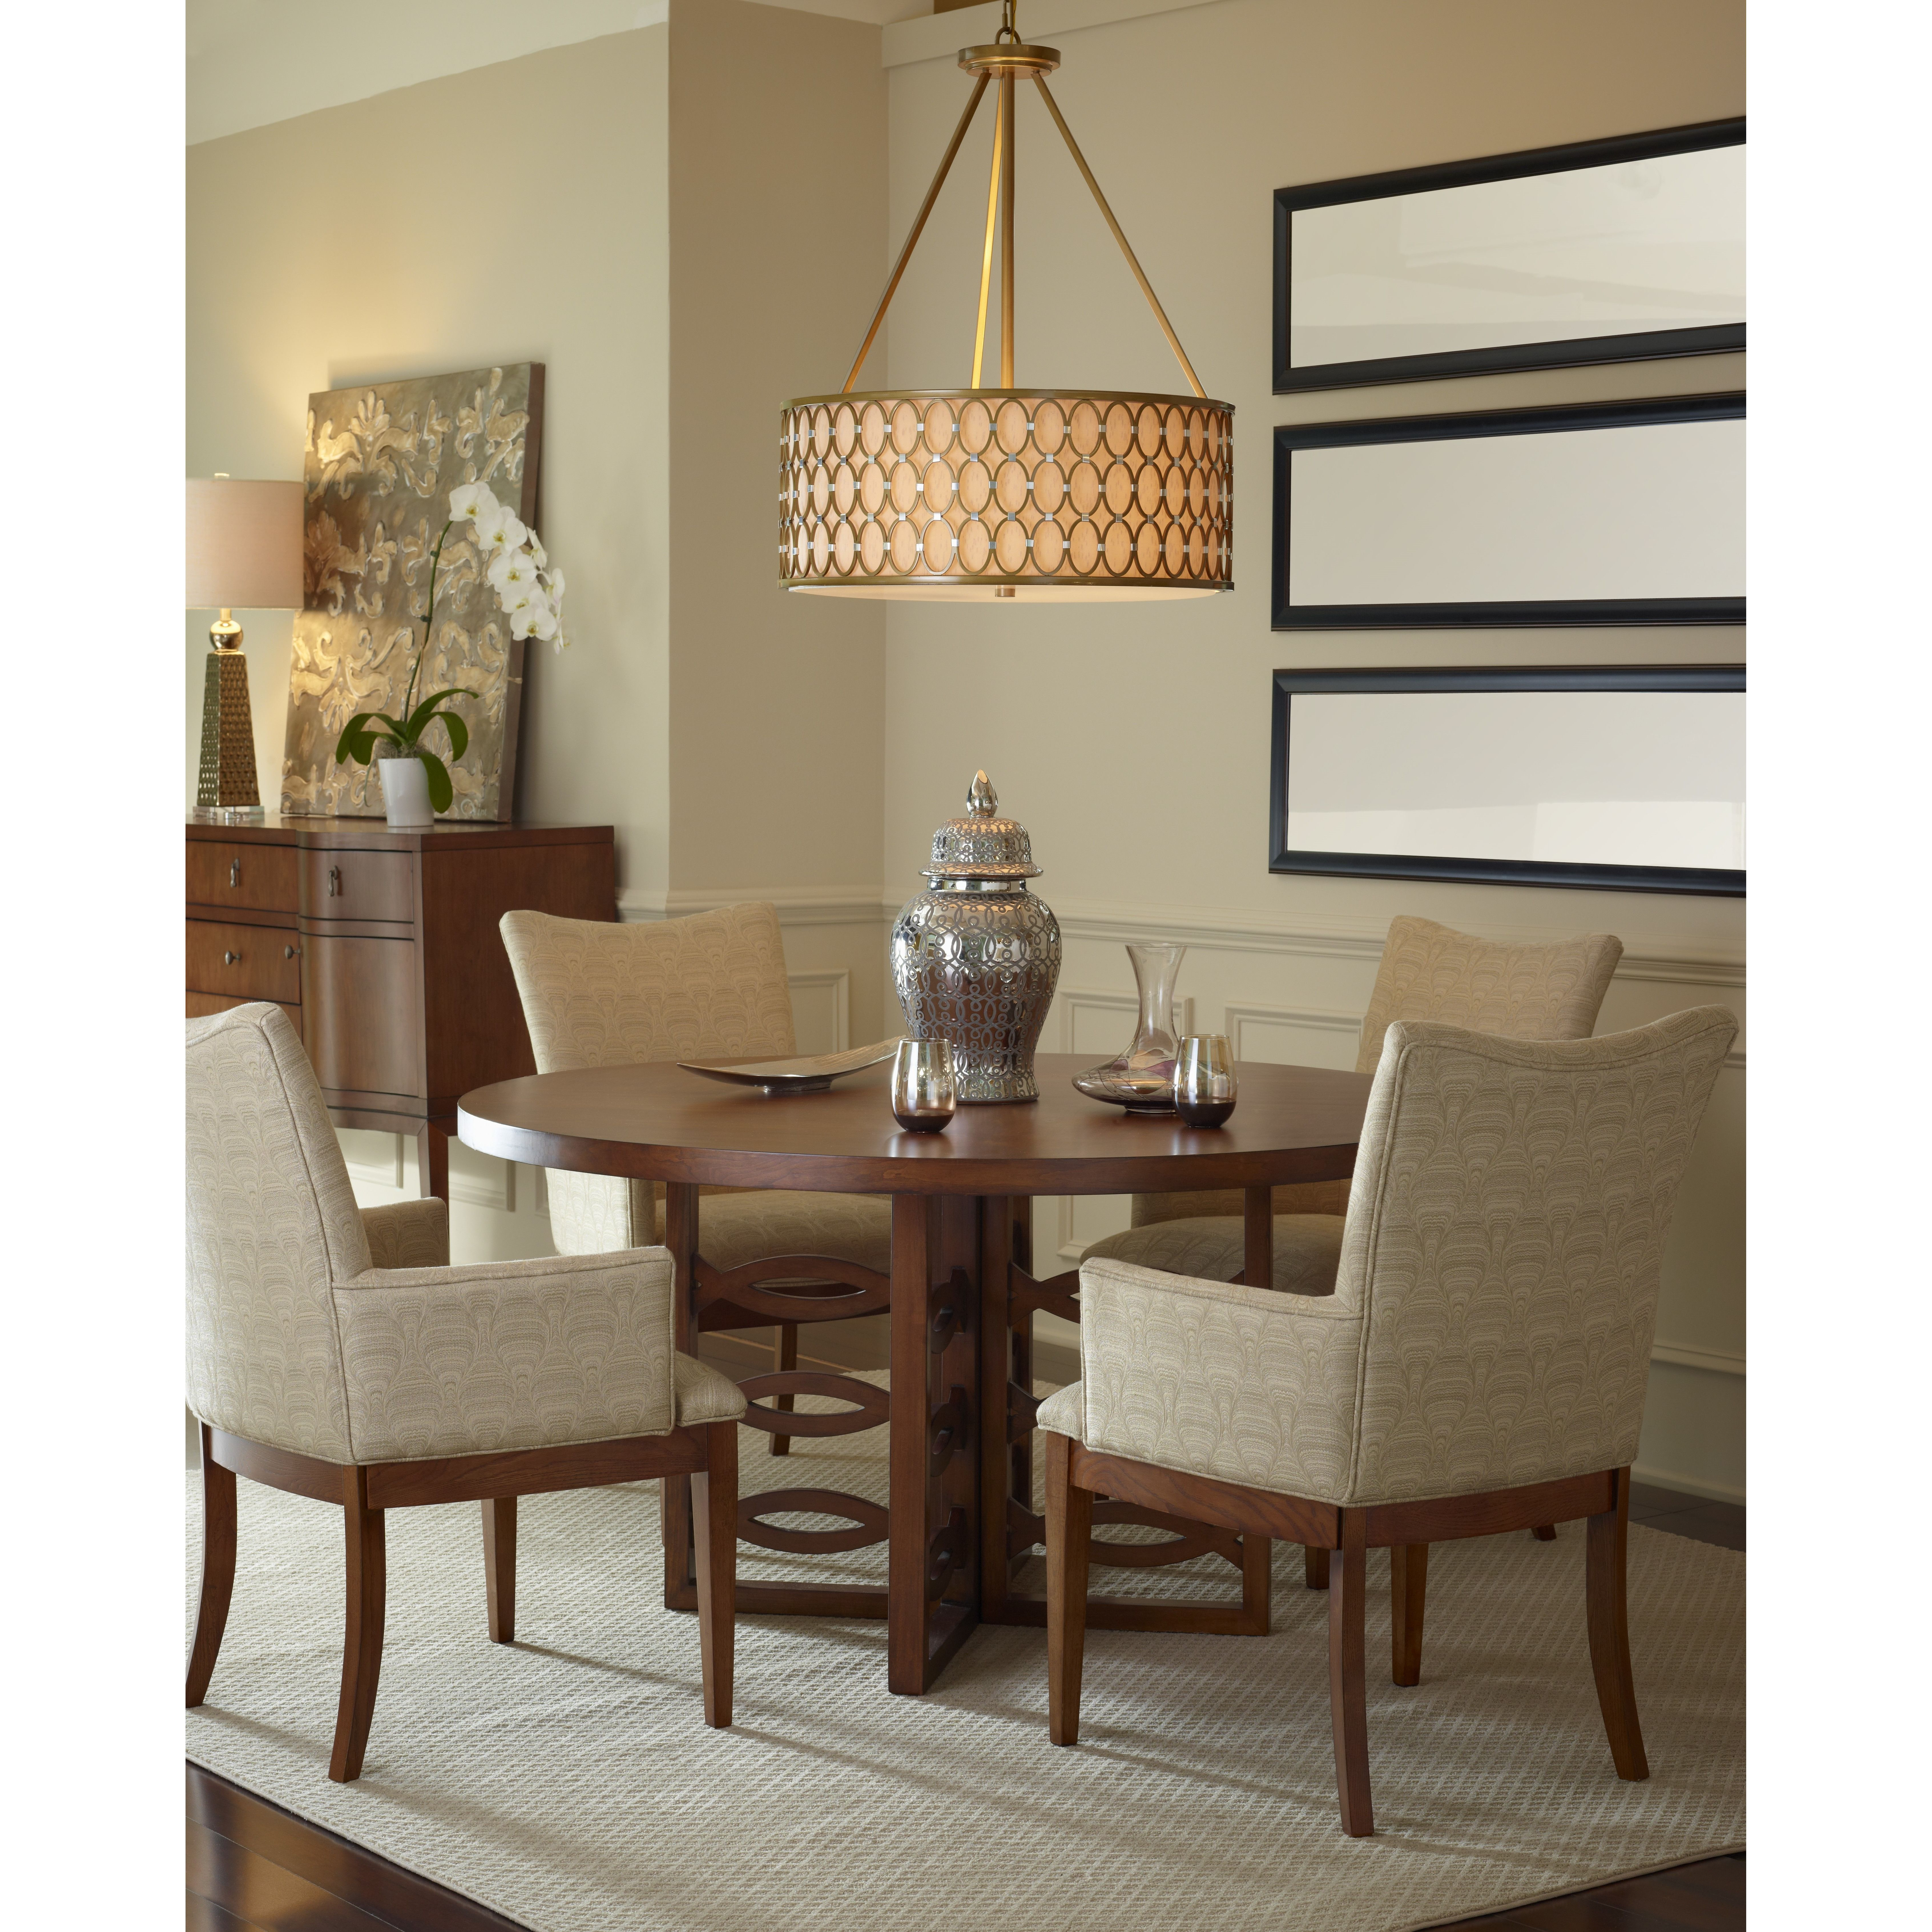 Darby Home CoR Delmont Arm Chair